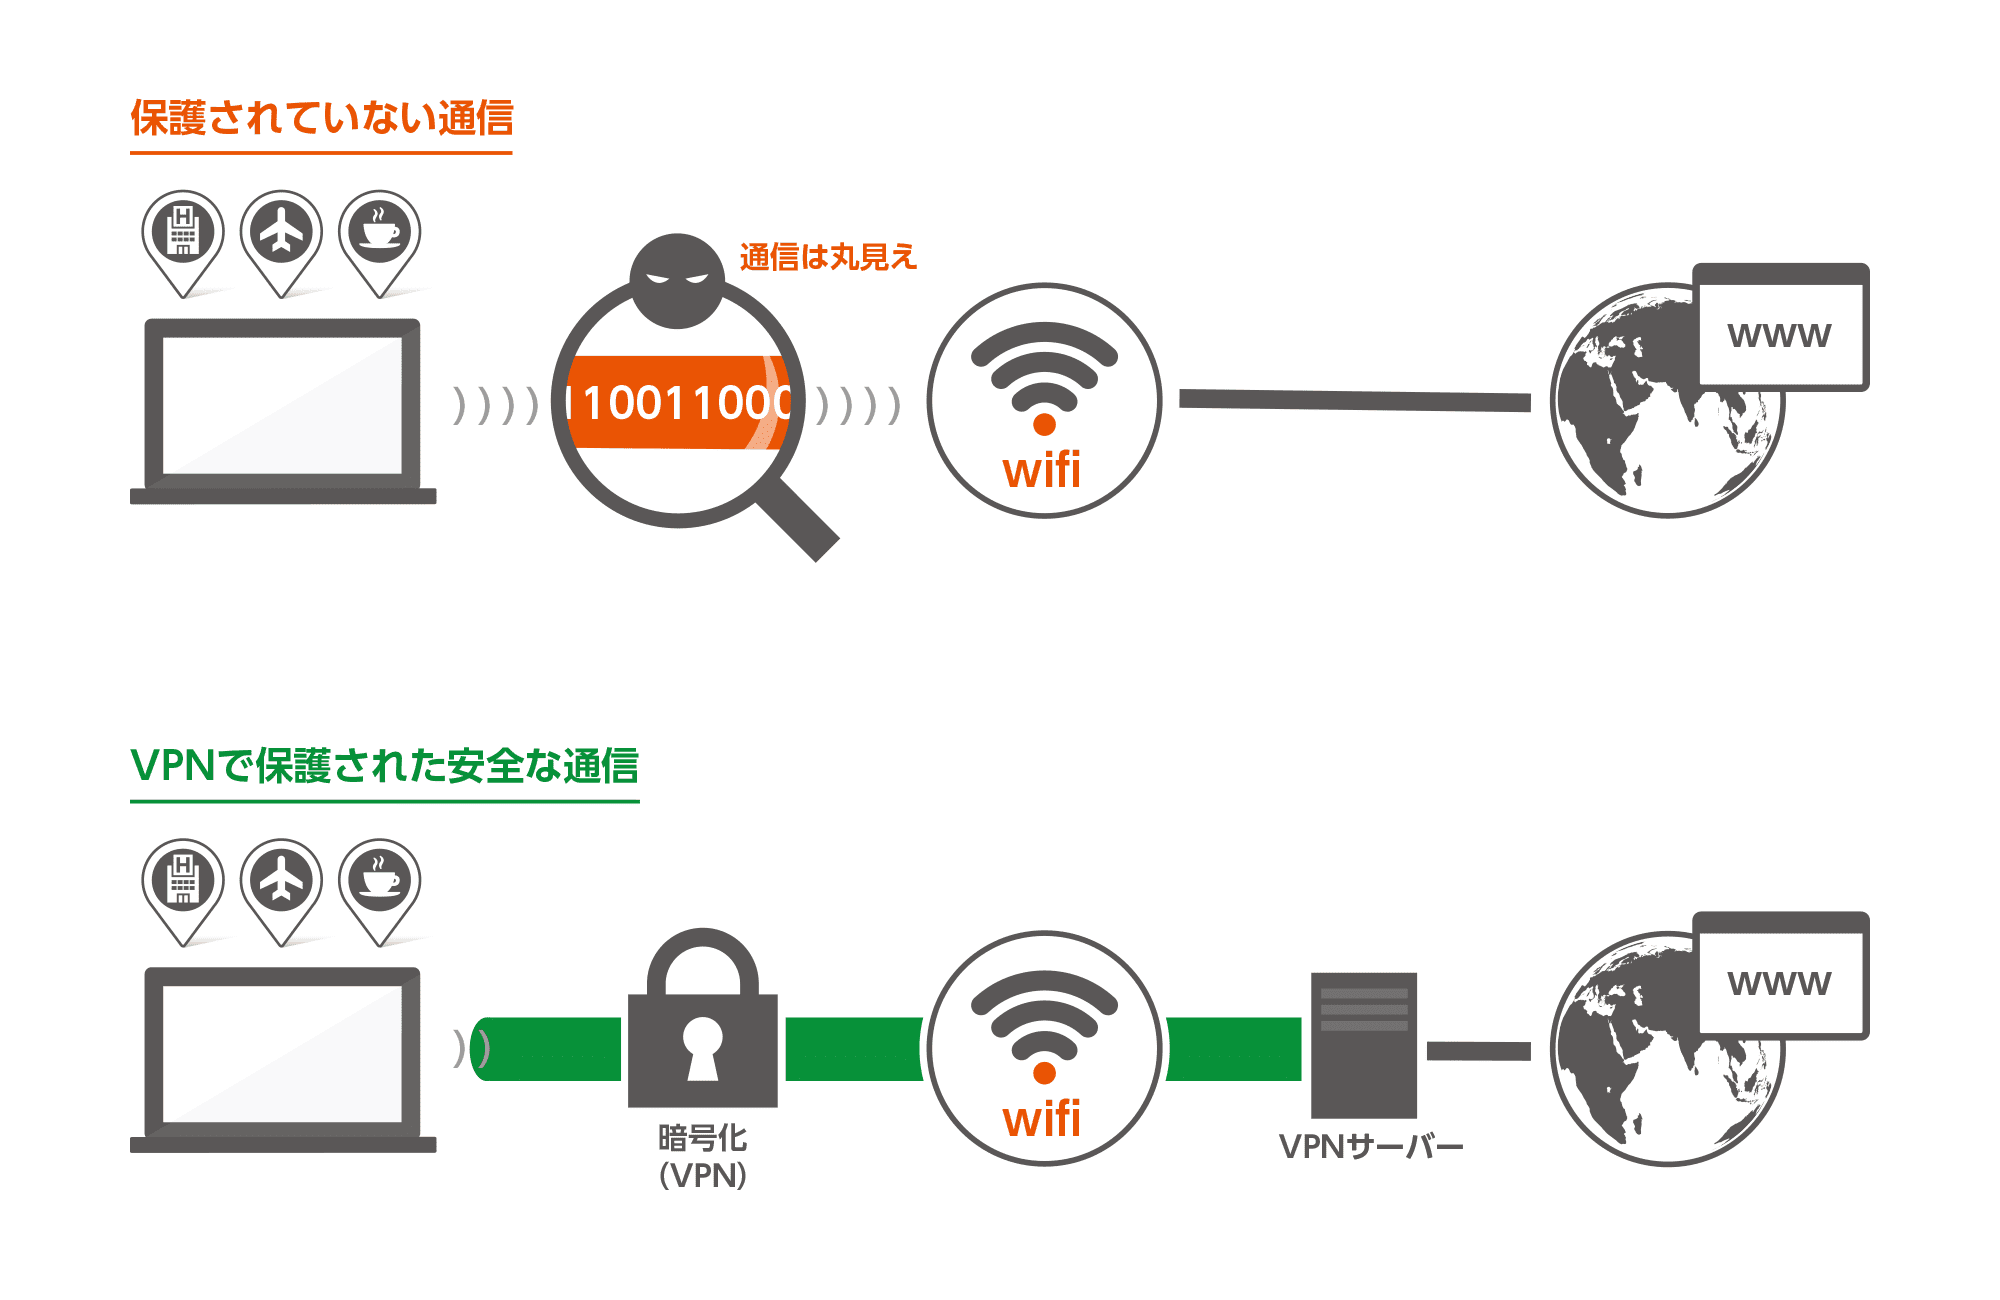 latest-version-security-products-04.png